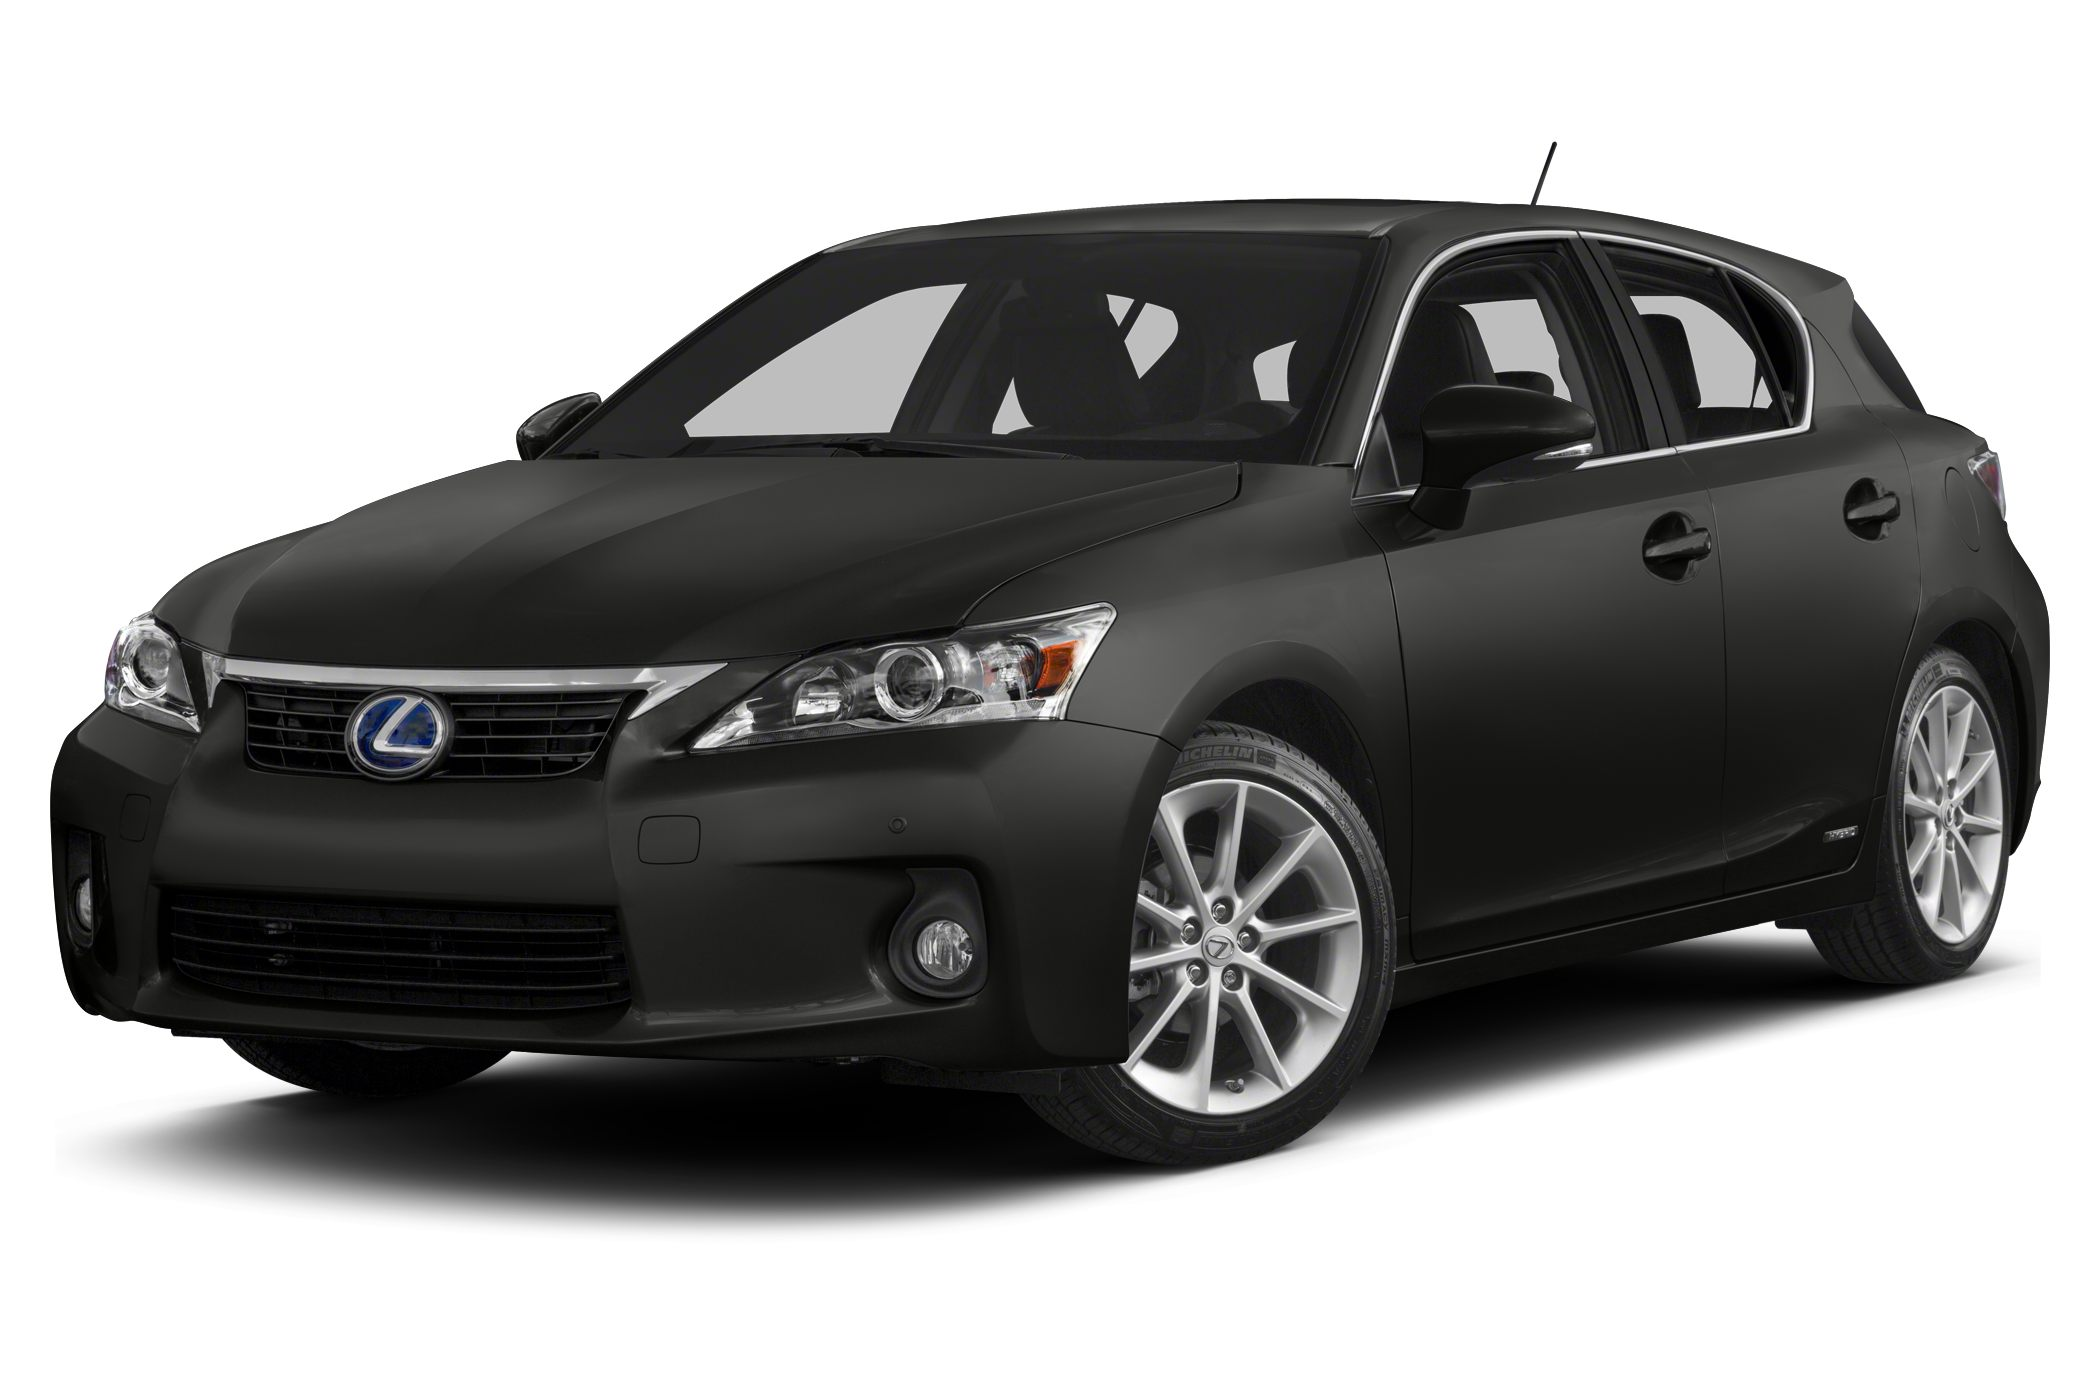 2011 Lexus CT 200h 200H Moonroof Navigation and Back Up Camera WOW HYBRID Isnt it time for a